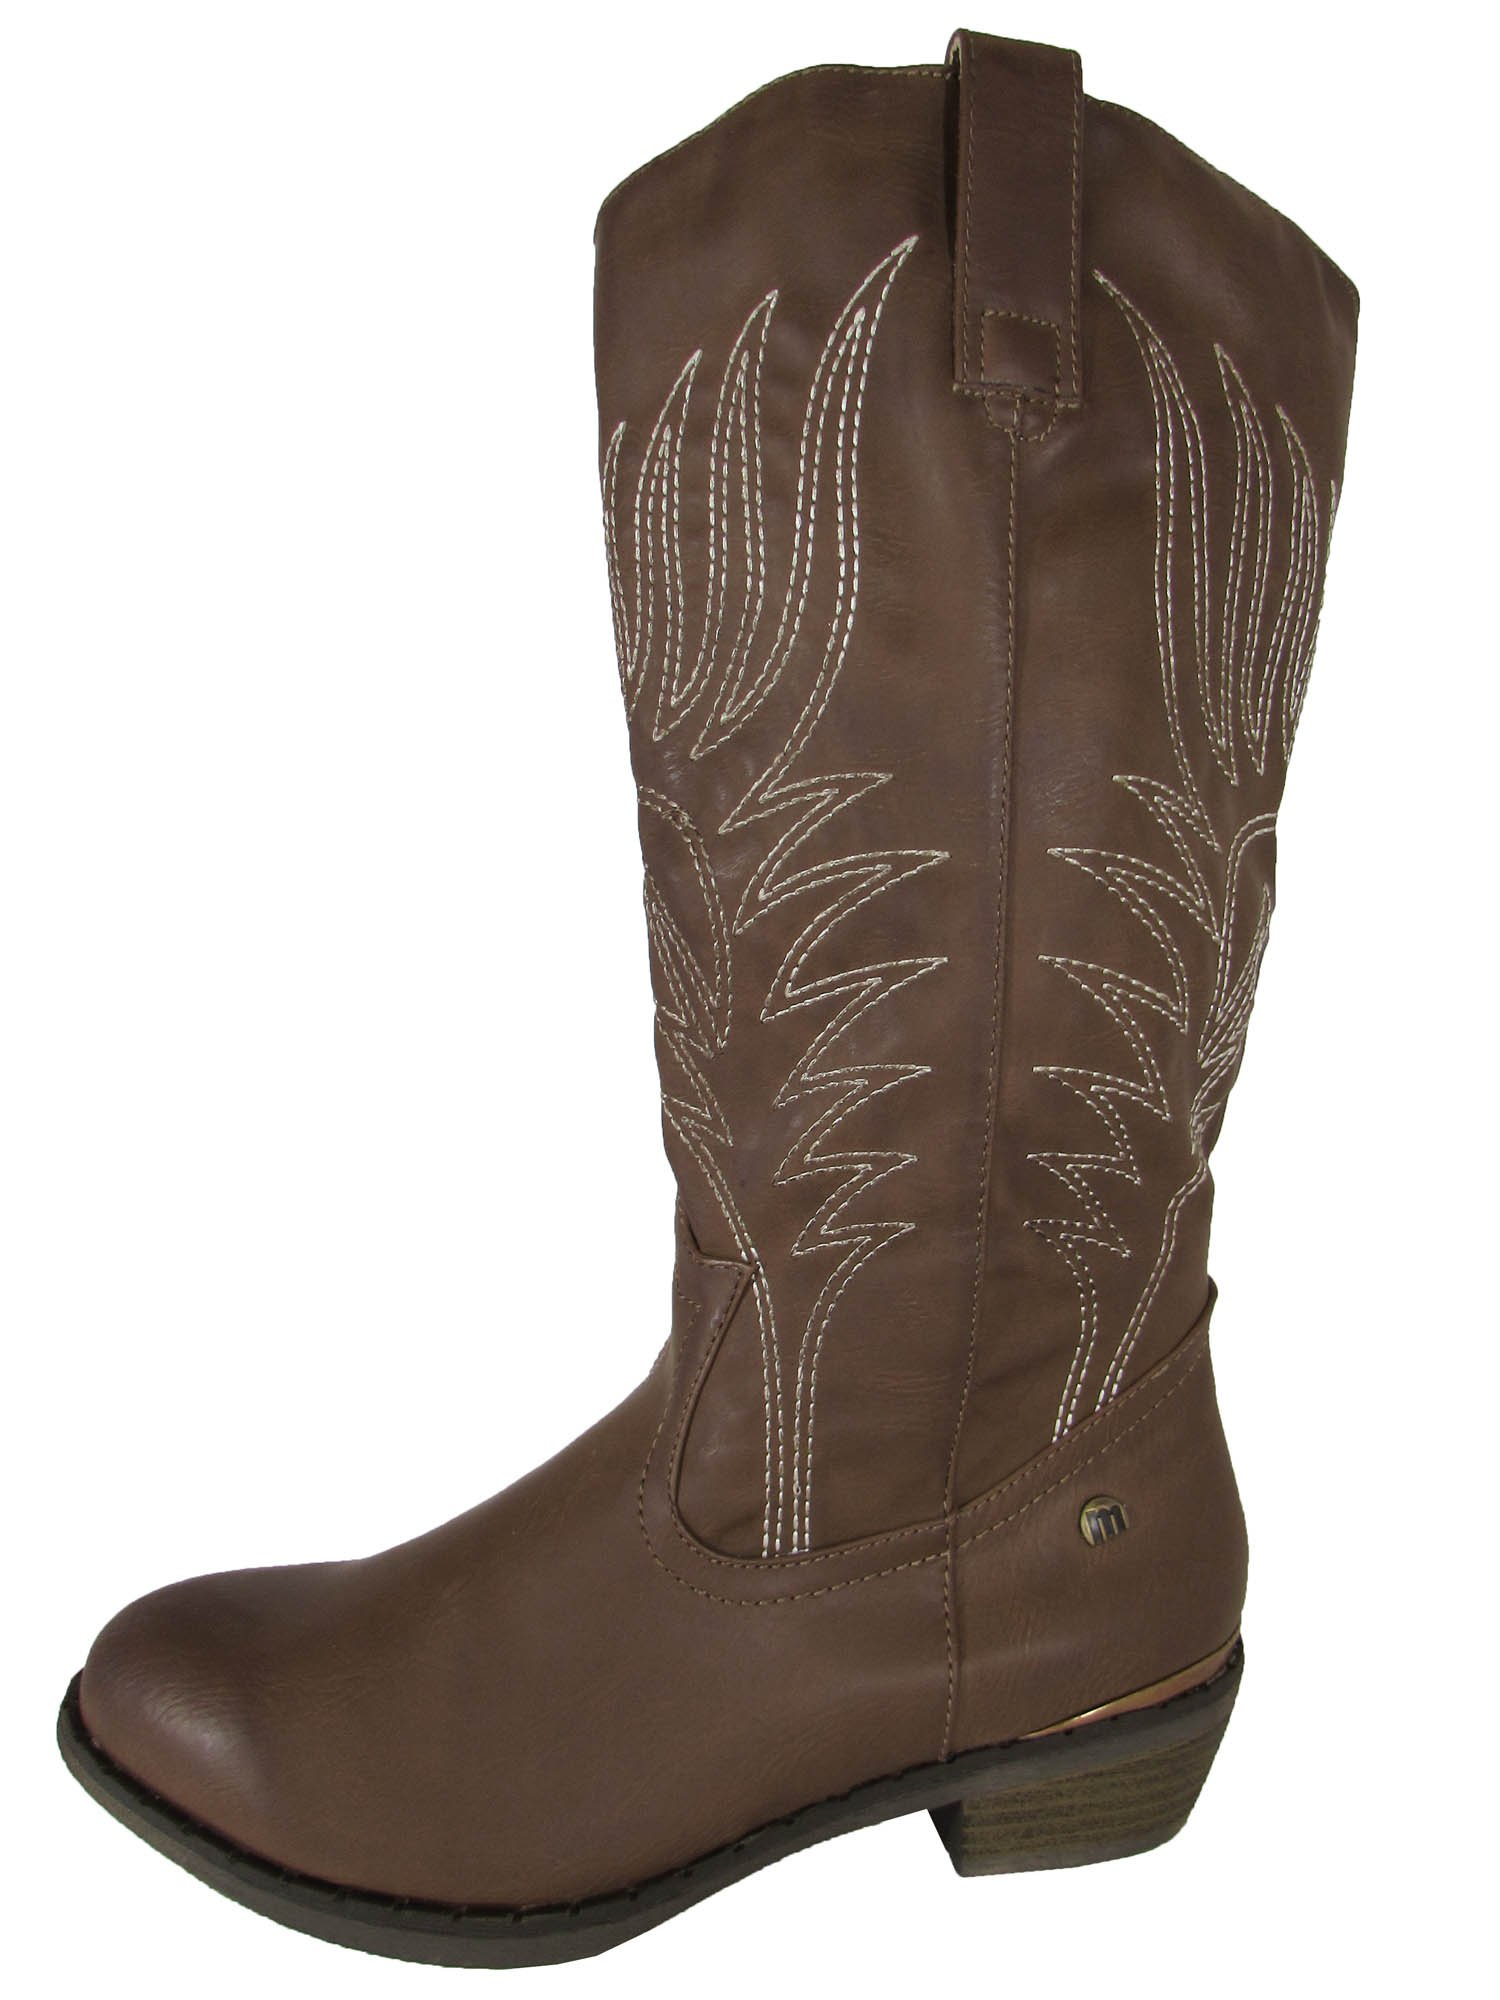 MTNG Mustang Womens 56143 Mid Calf Cowgirl Boots, Taupe, 41 EU / 9.5-10 US